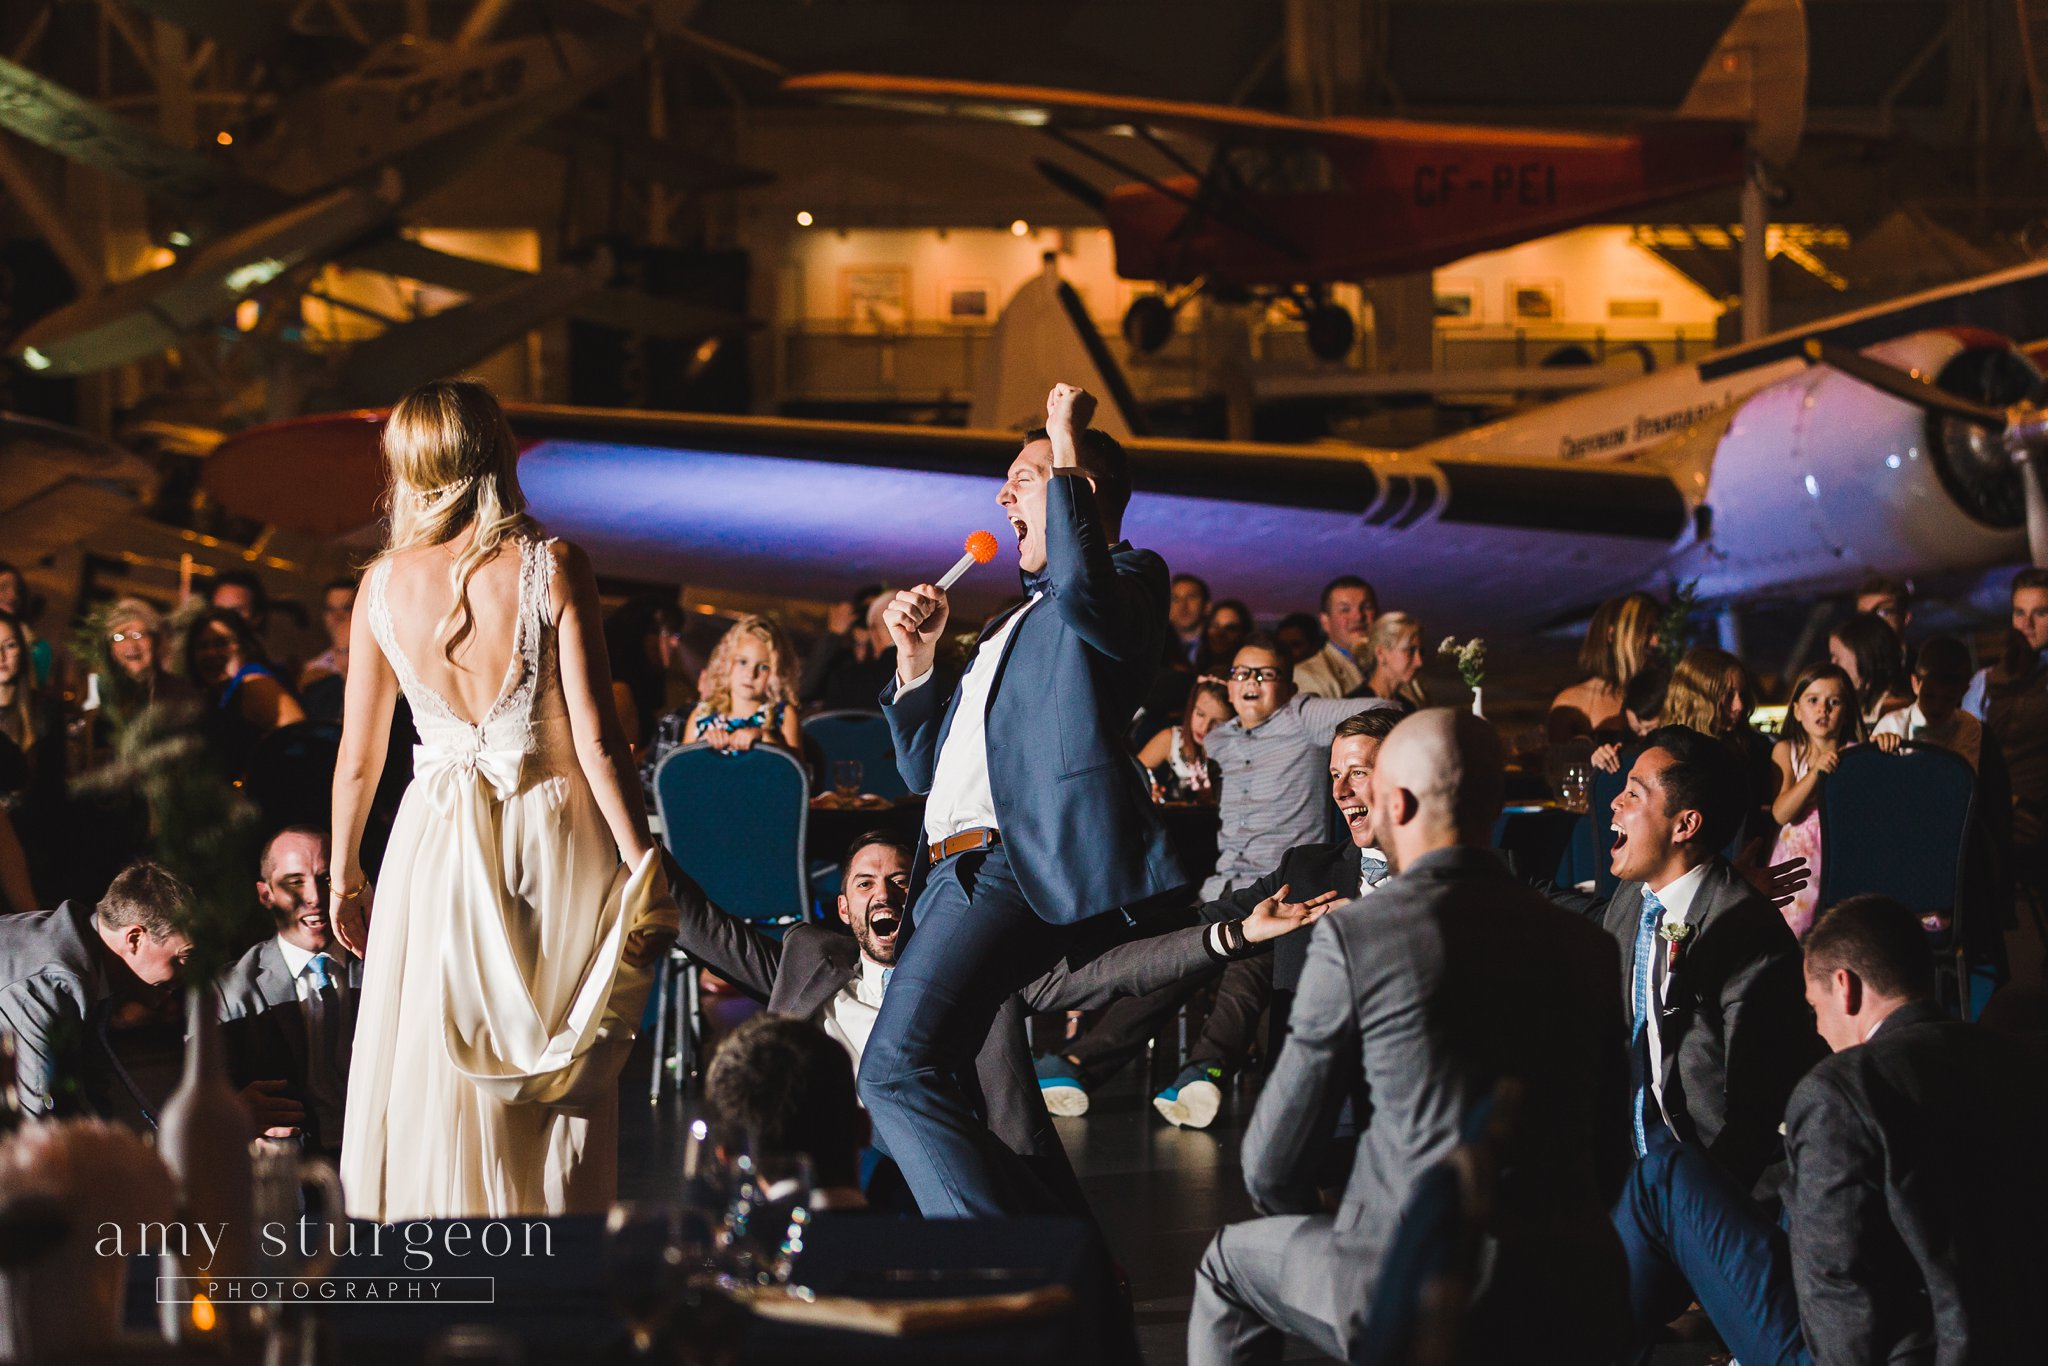 Surprise dance for the bride at the Canadian aviation museum wedding